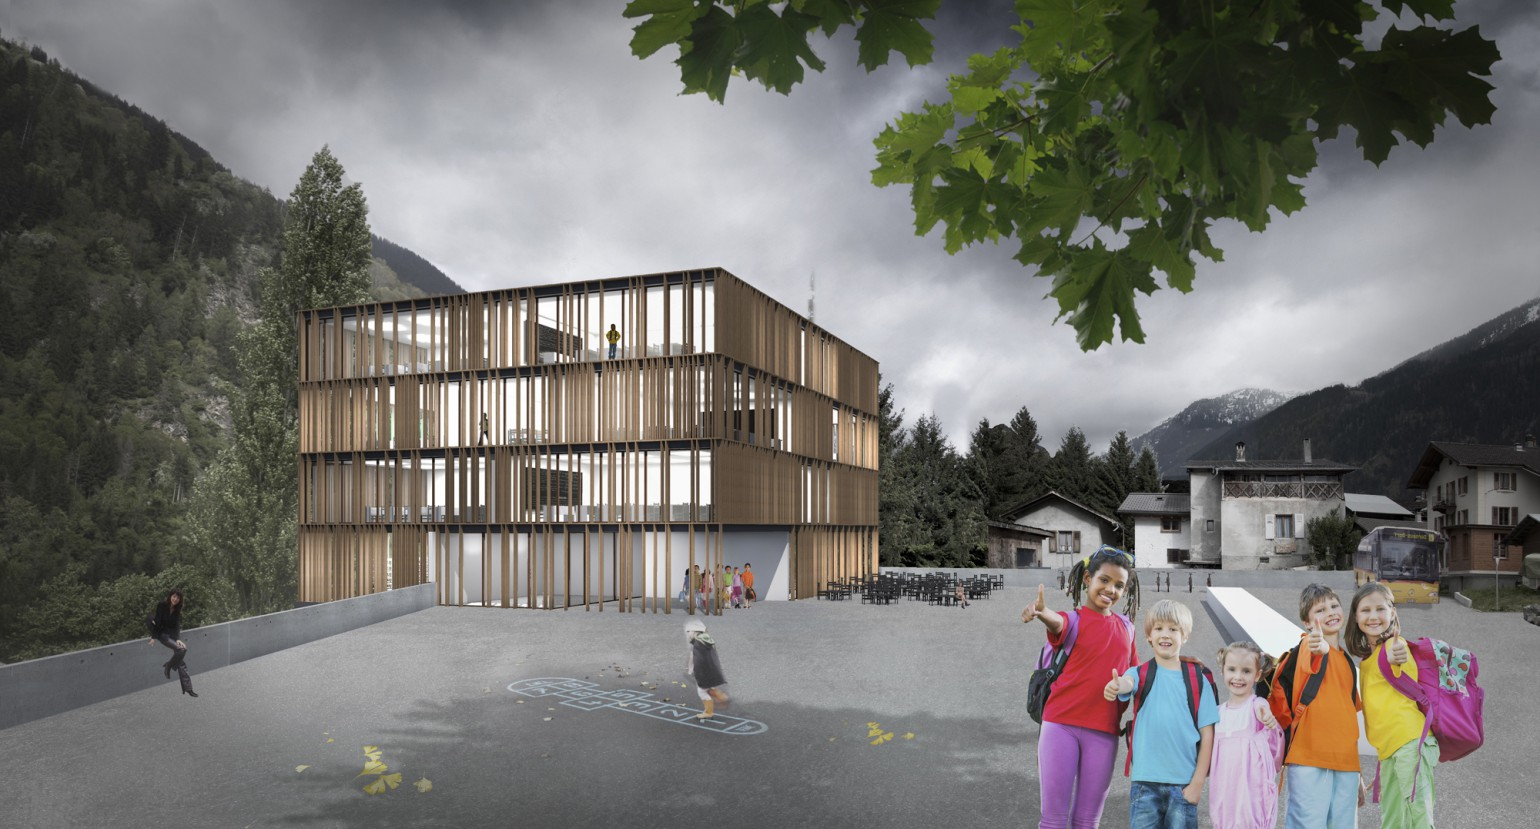 Ecole uape creche et gym meyer architecture sion Meyer architecture